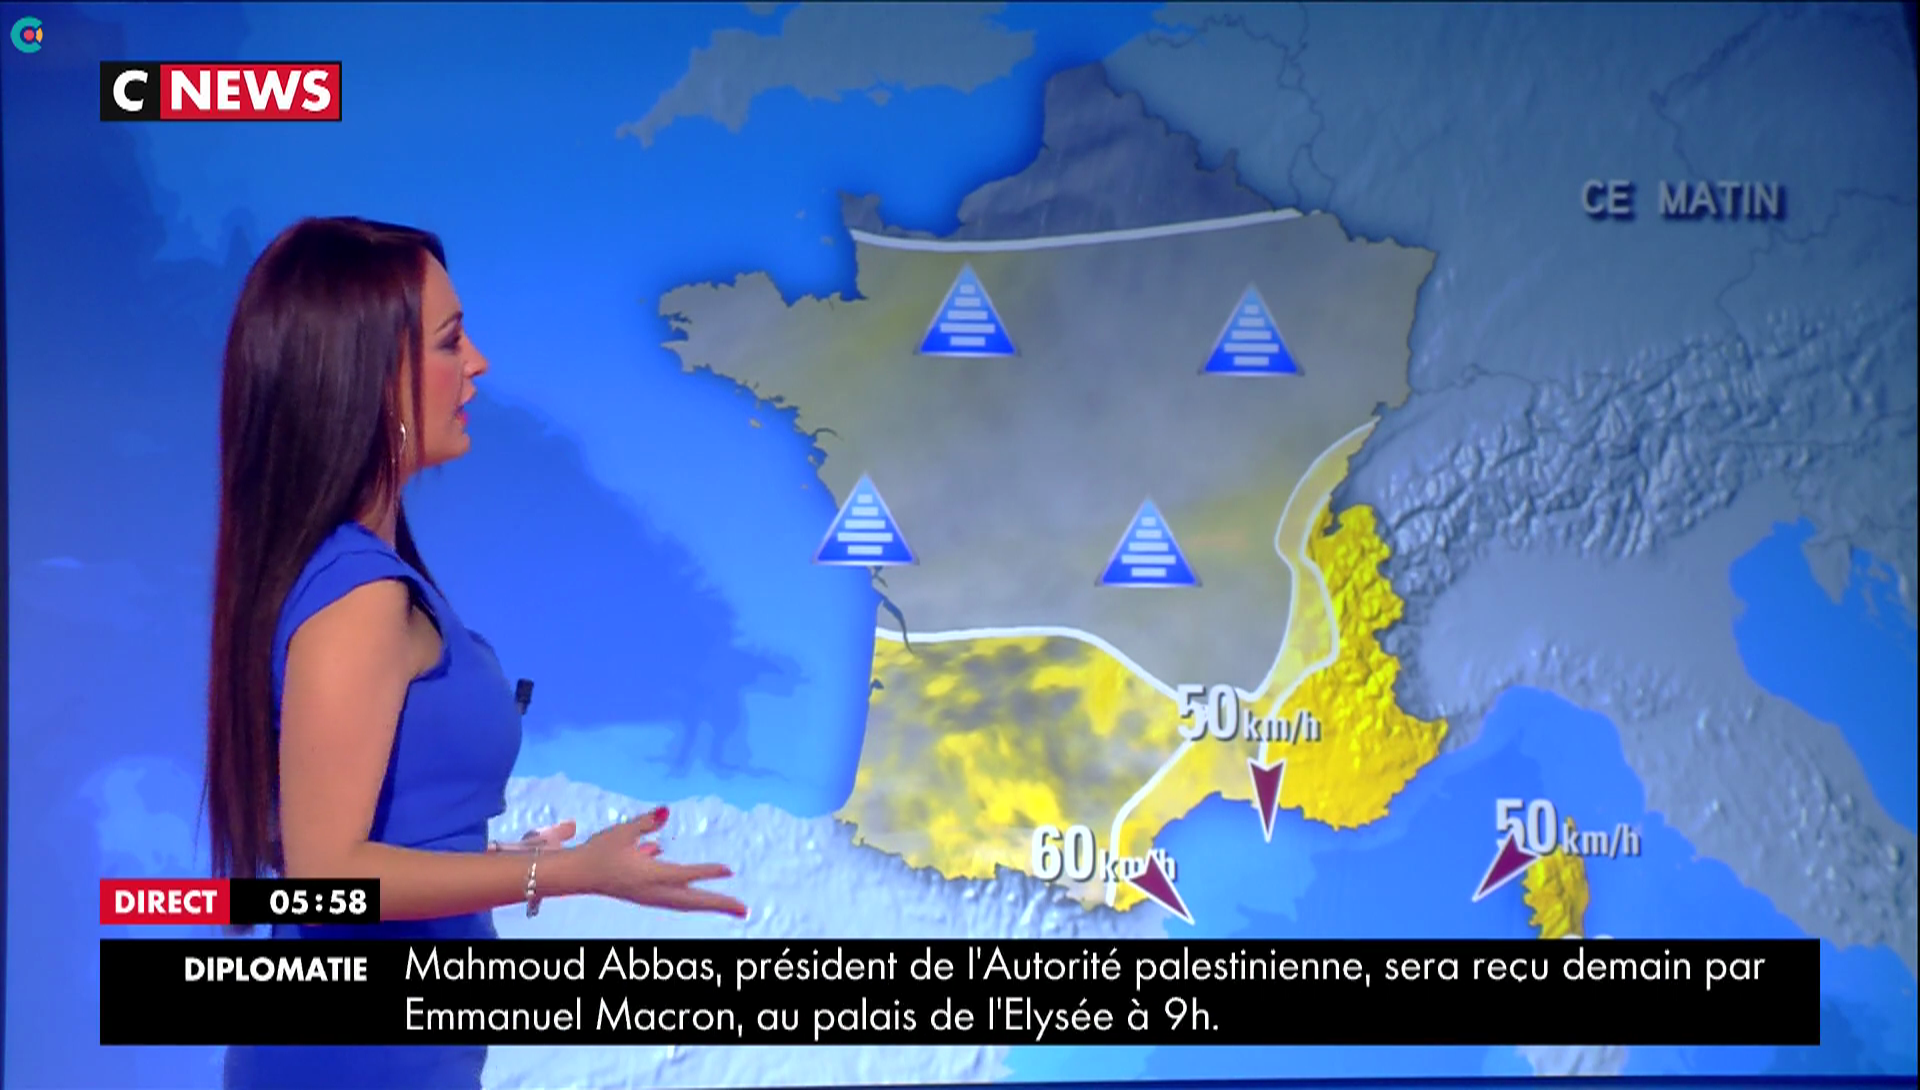 alexandrablanc06.2017_12_21_meteoCNEWS